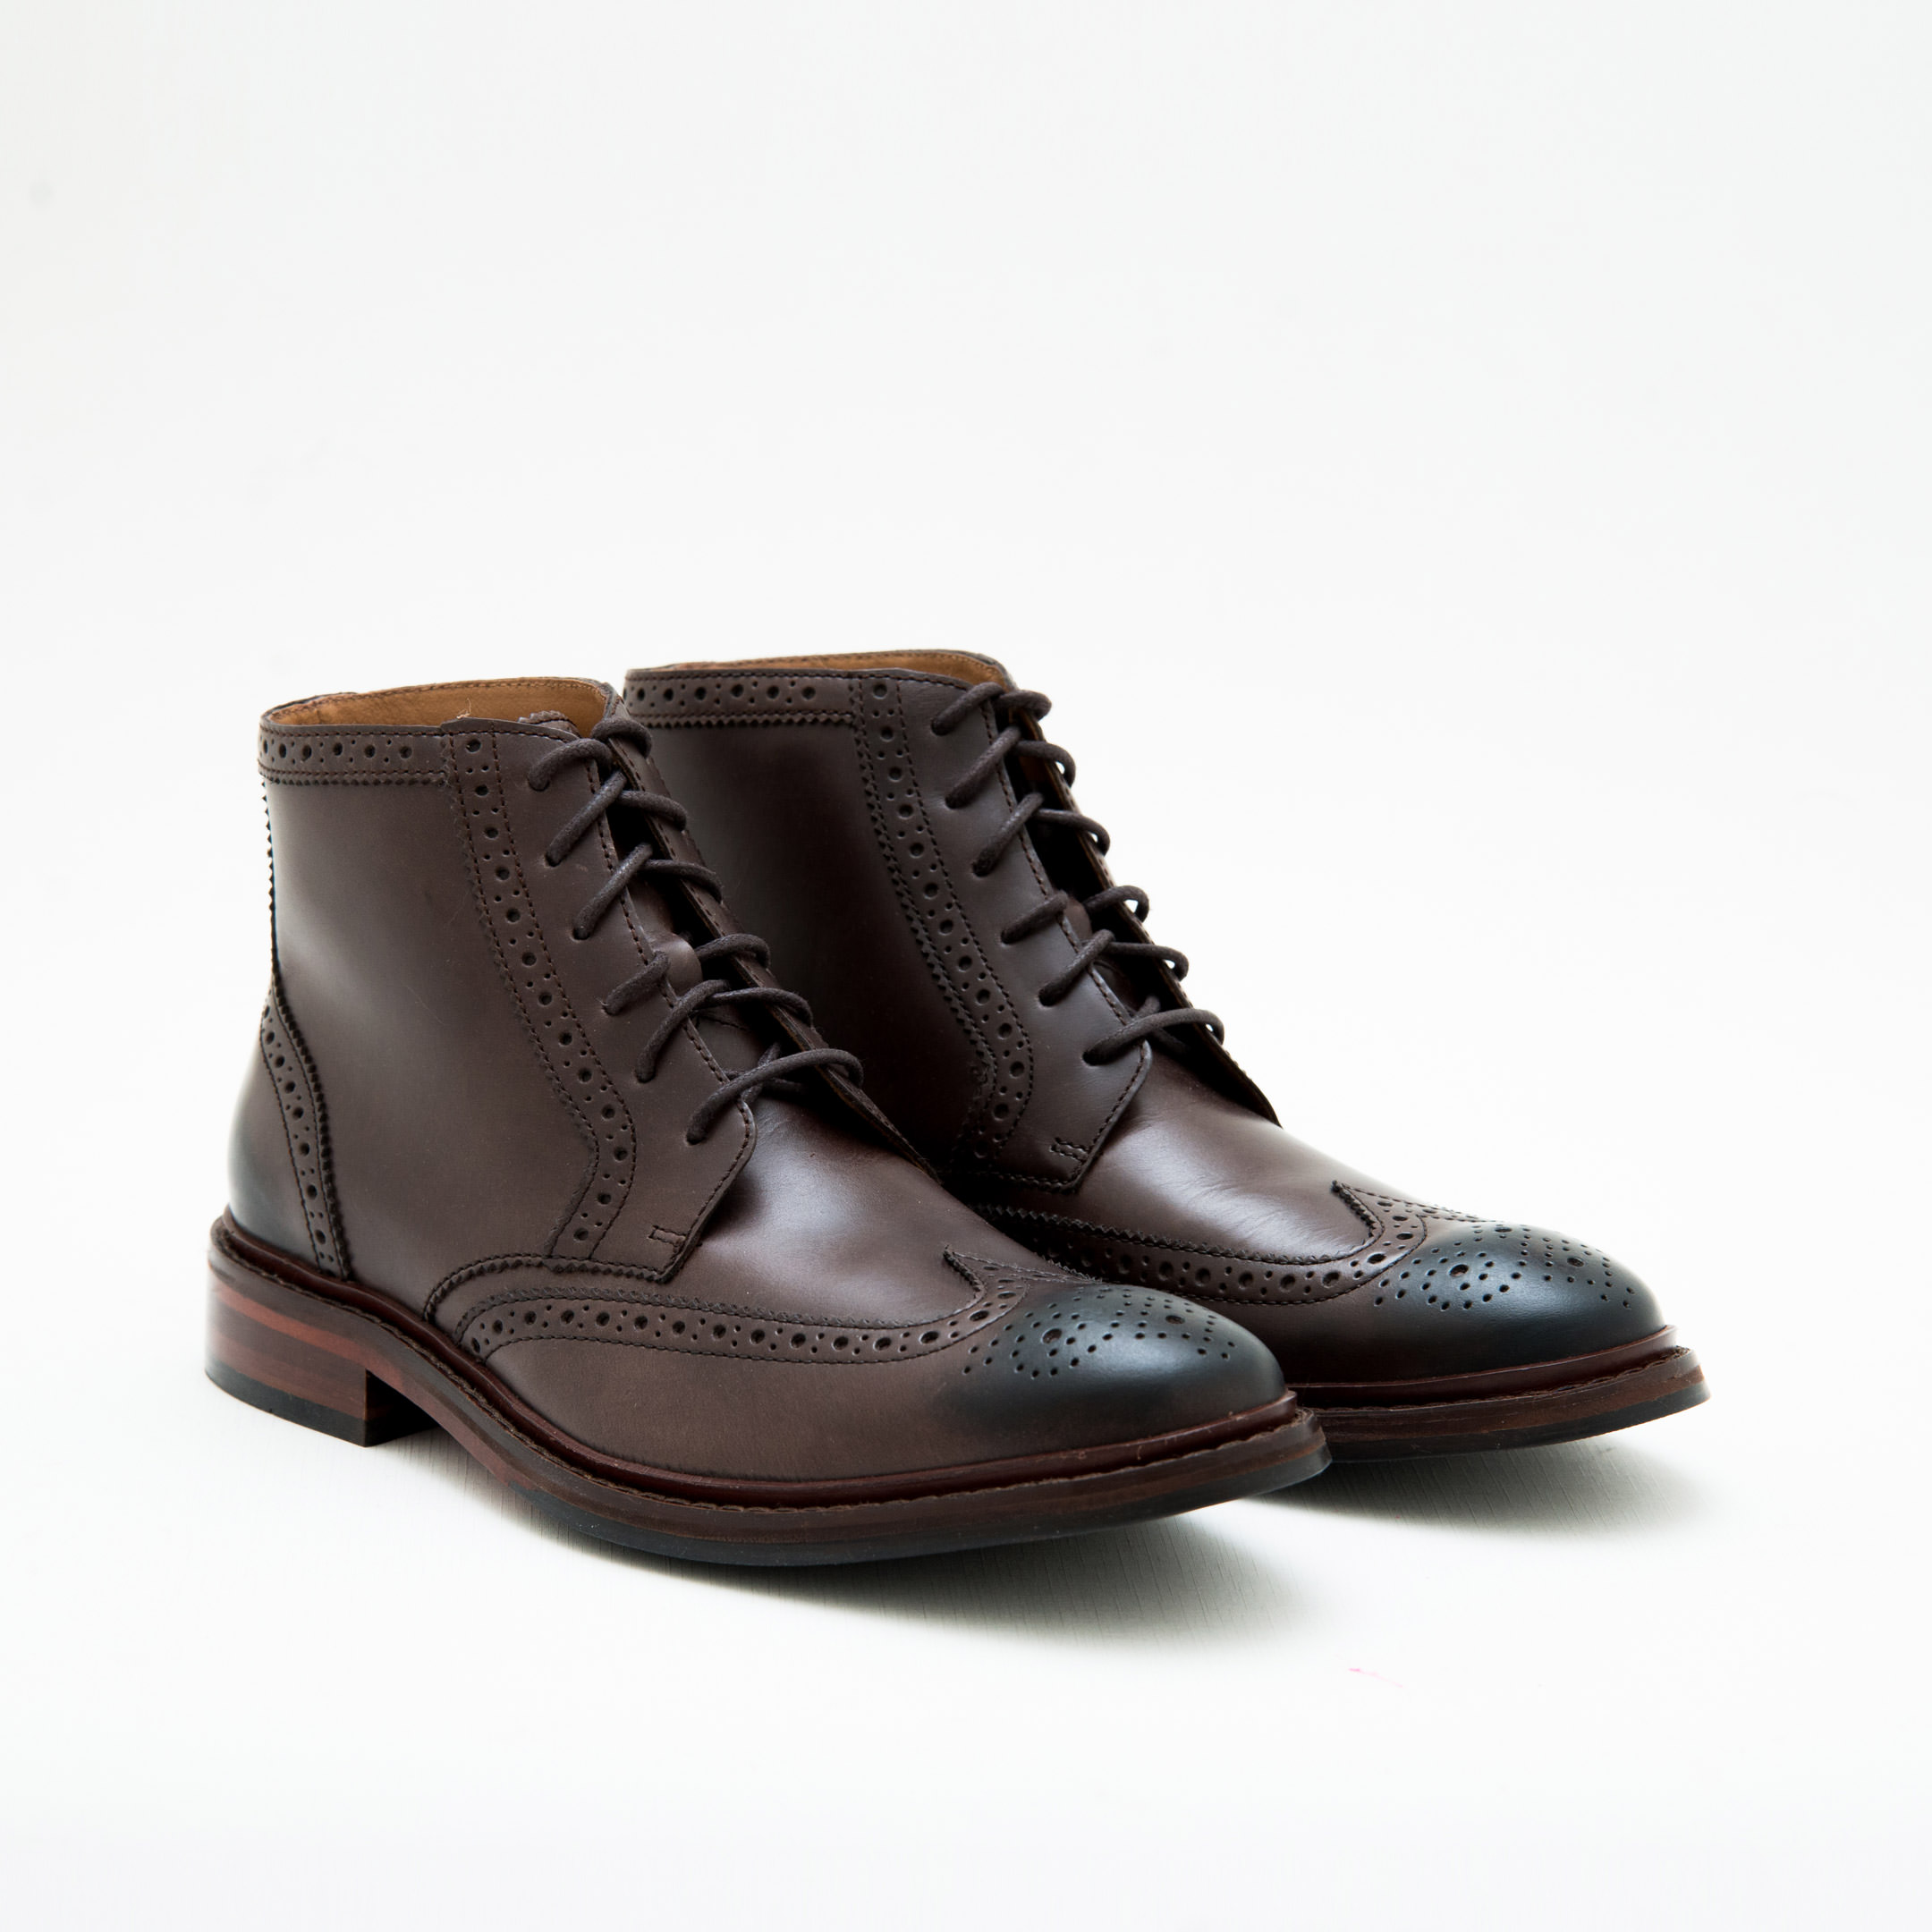 Giày Bốt Nam Medium Brown Full Brogues Dress Boots Cole Haan